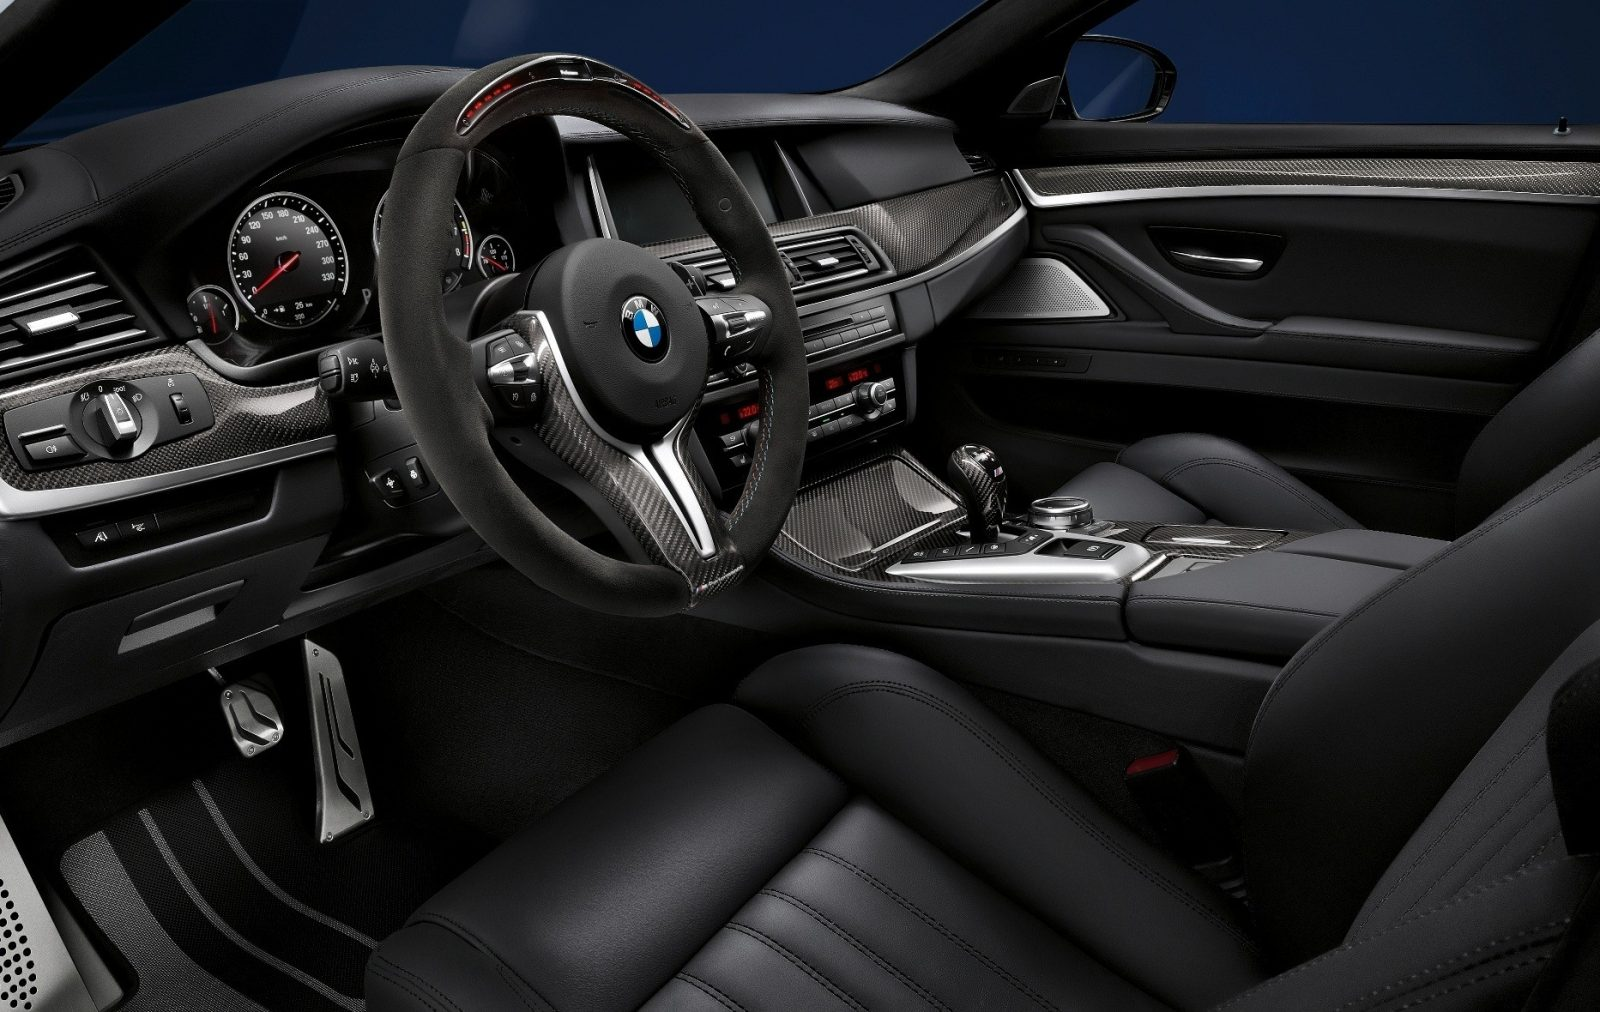 M Performance Catalog Offers Hundreds of Ways to Up the Drama and Road Presence of 335i, 535i, M3 and even the X5 and X6 63